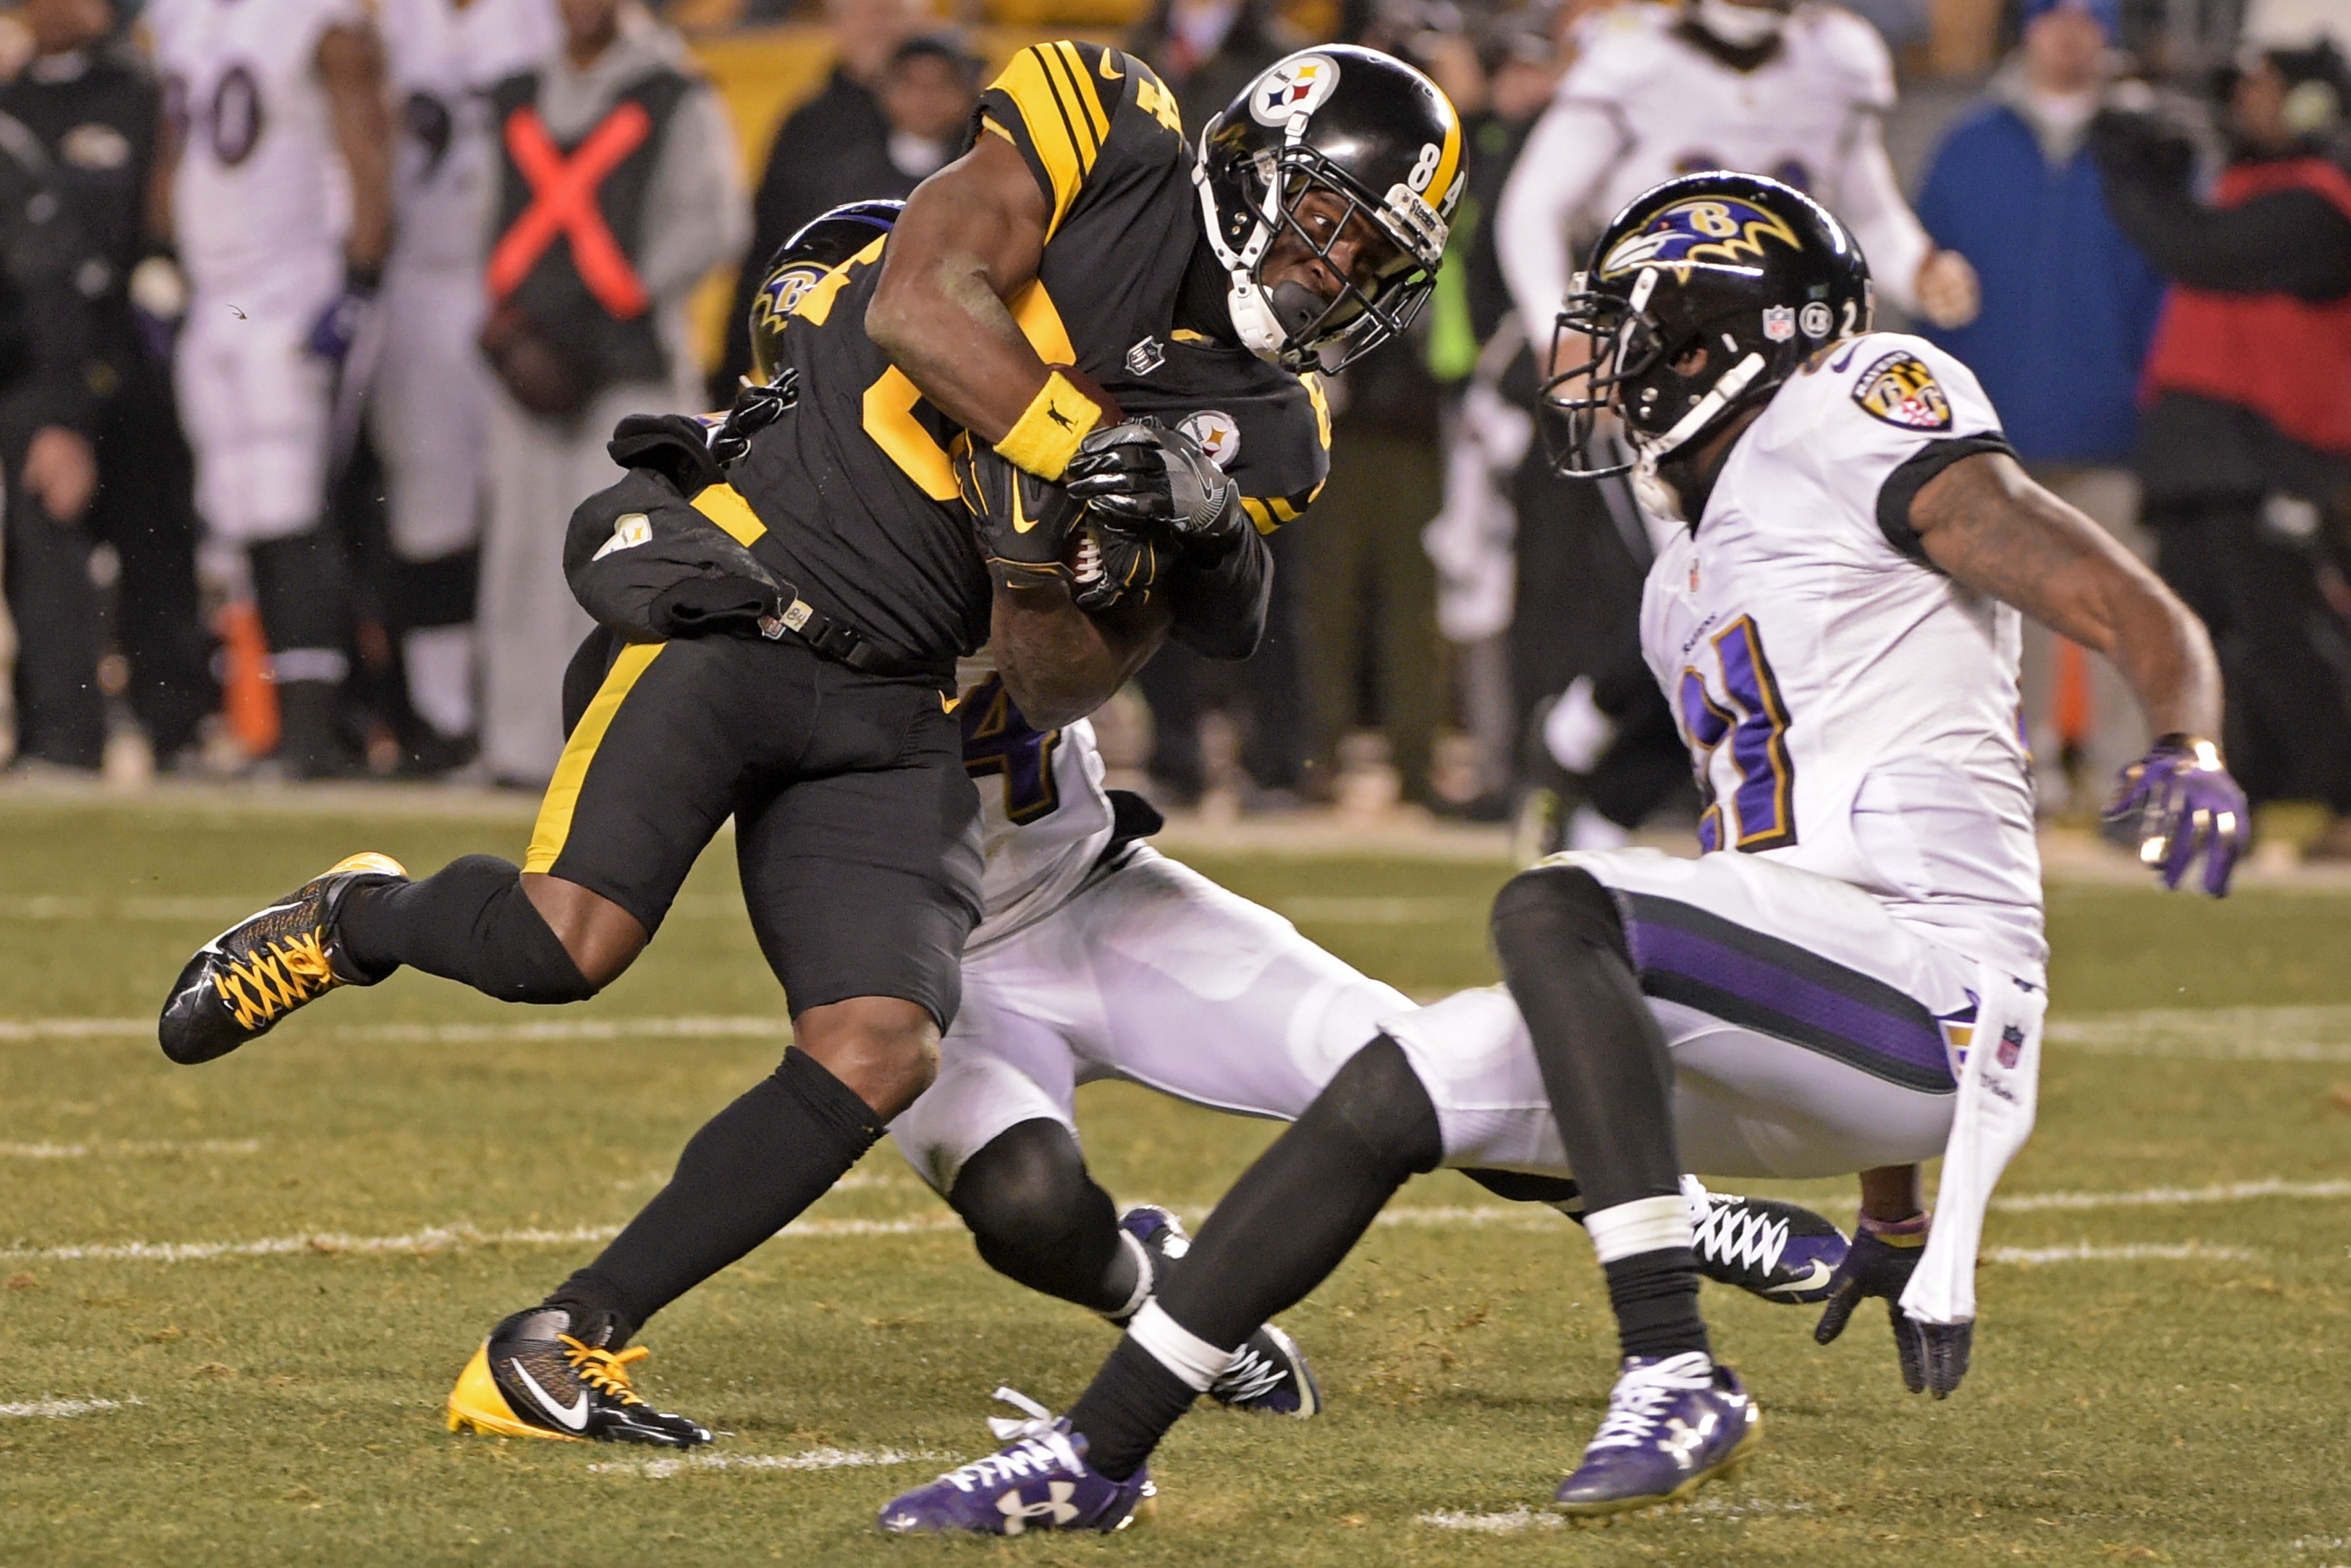 Pittsburgh Steelers wide receiver Antonio Brown (84) is tackled by Baltimore Ravens cornerback Kyle Arrington (24) after making a catch during the second half of an NFL football game in Pittsburgh, Sunday, Dec. 25, 2016. (AP Photo/Fred Vuich)